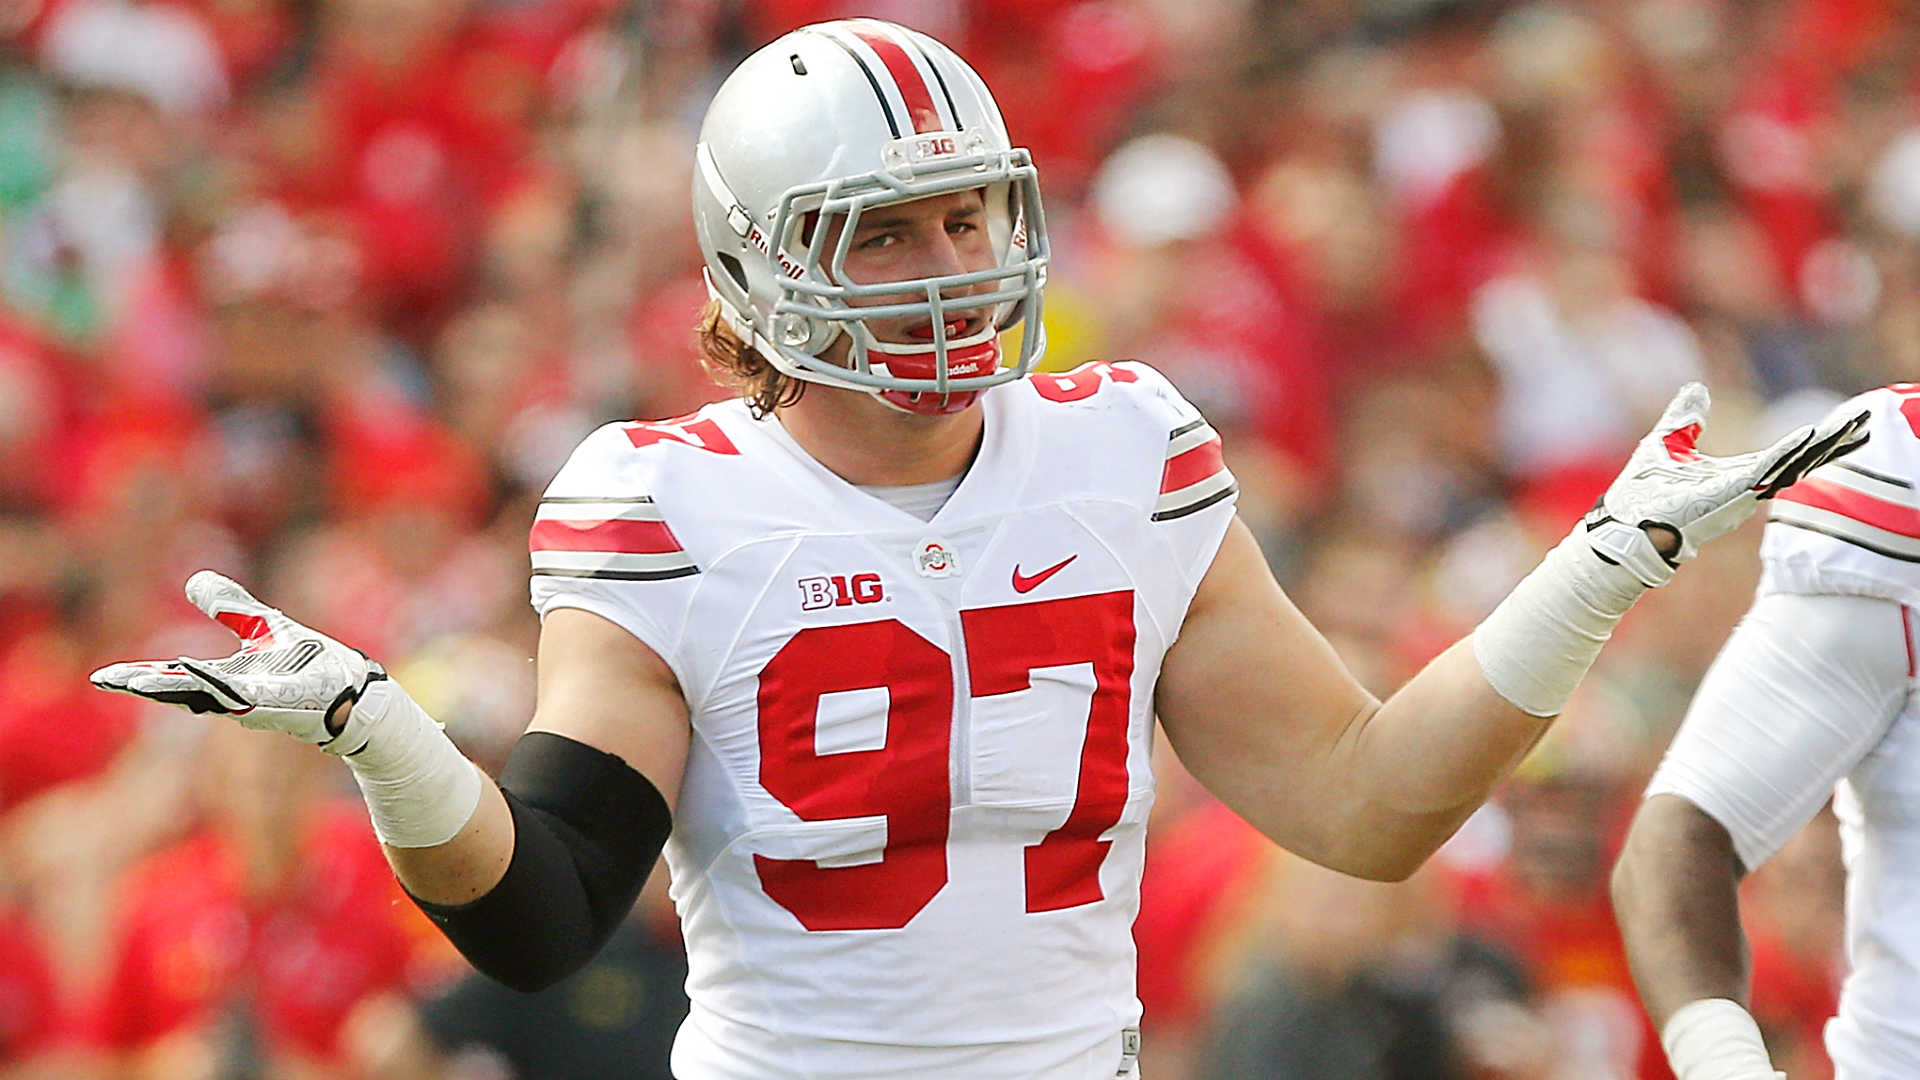 Joey Bosa could be No 1 pick someday but next move es first